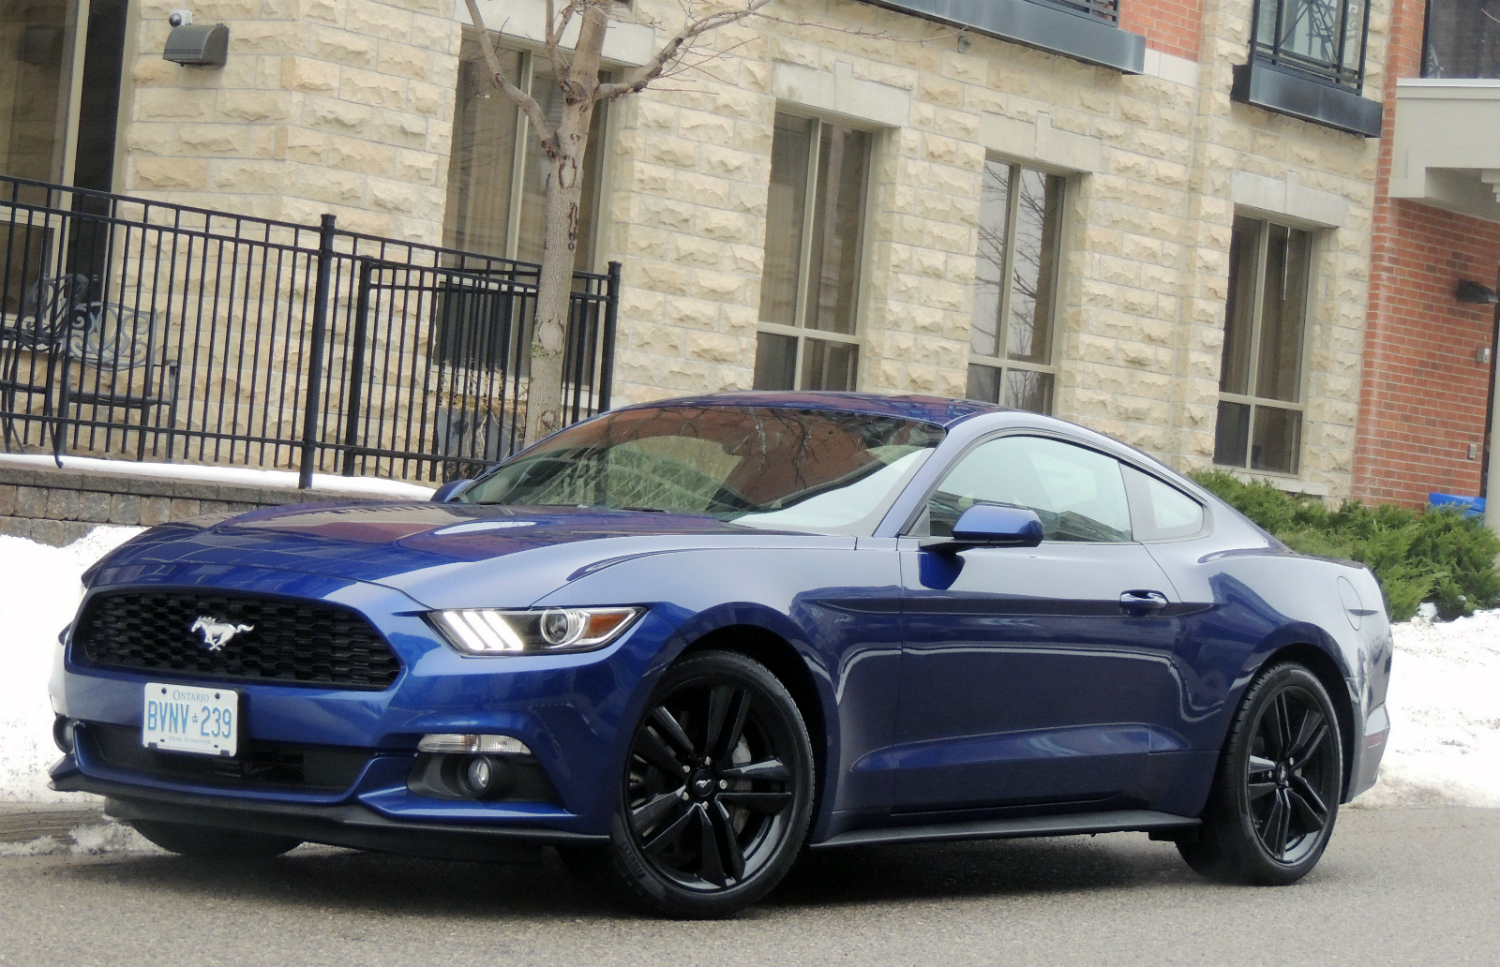 Neil's Top Five Best Cars of 2014